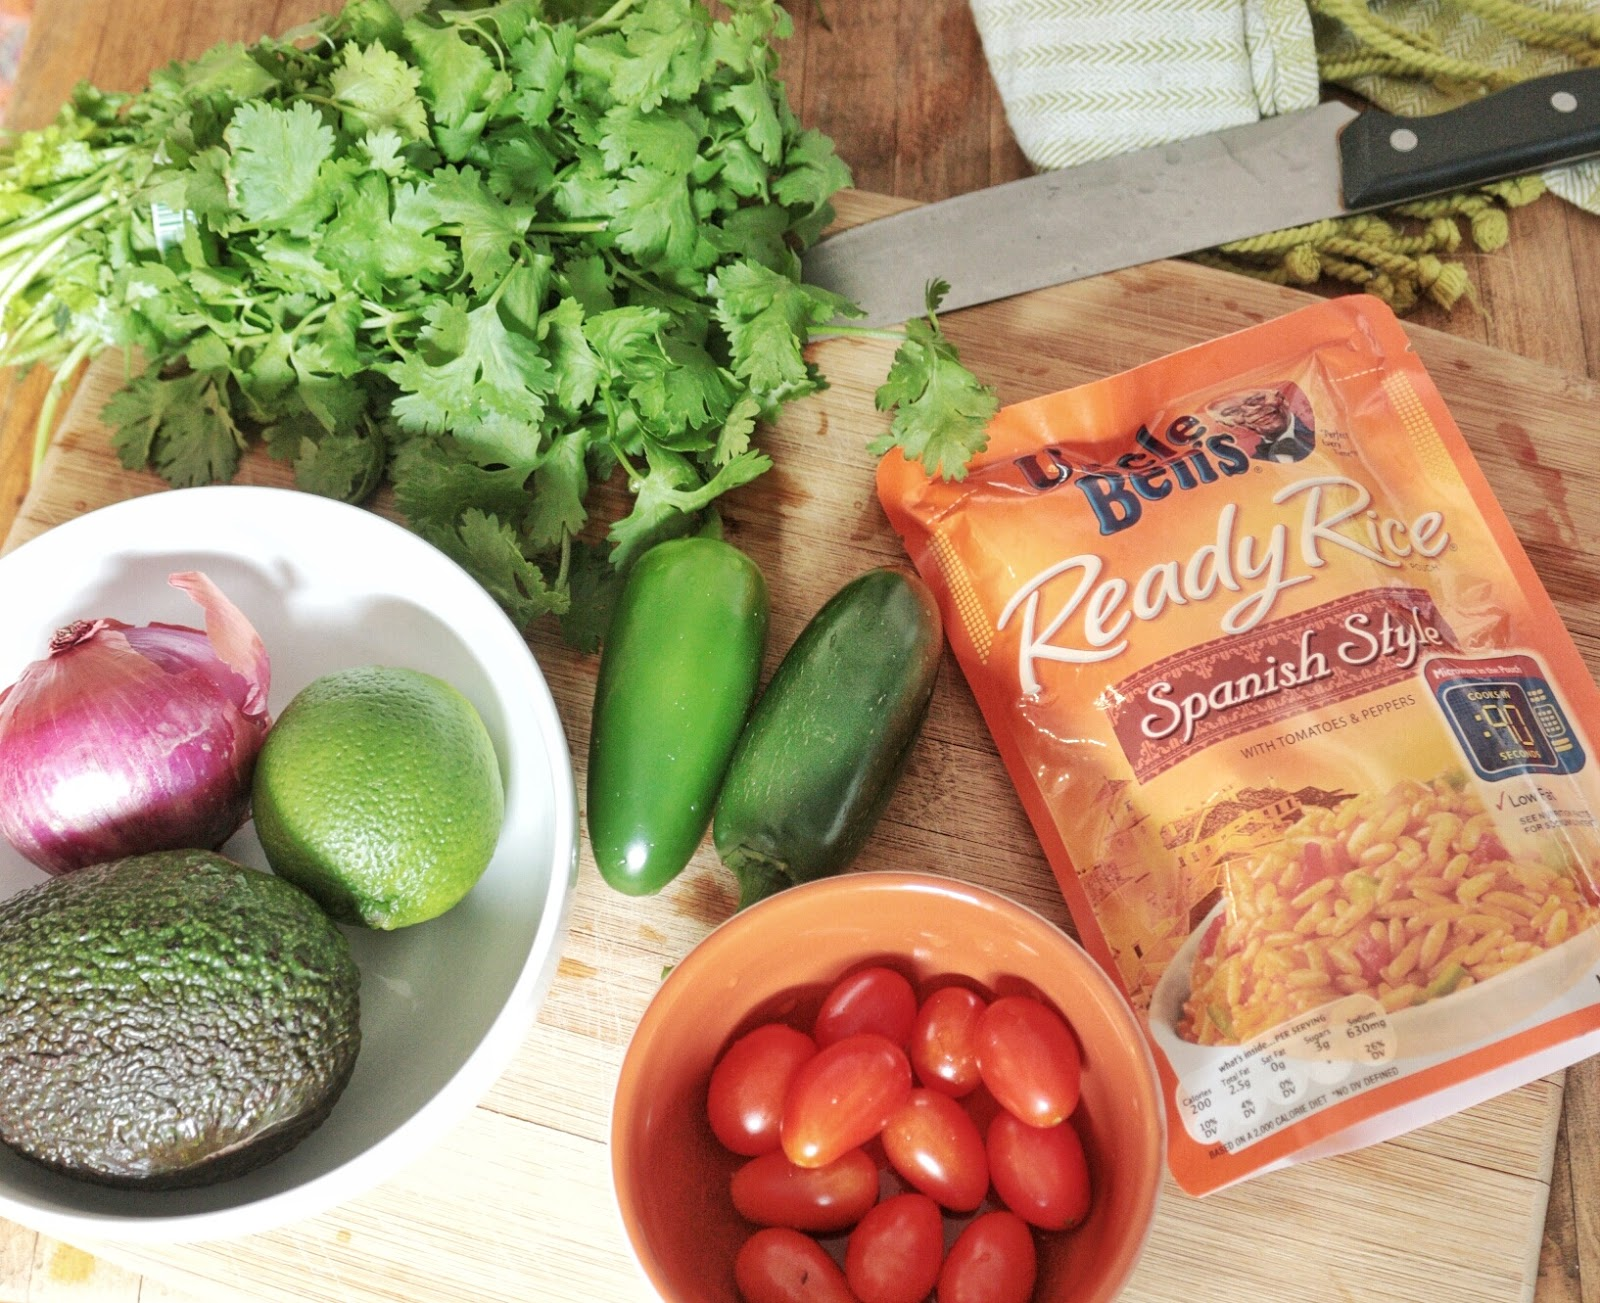 Cooking With Kids:  Make Your Own Burrito Bowl Bar